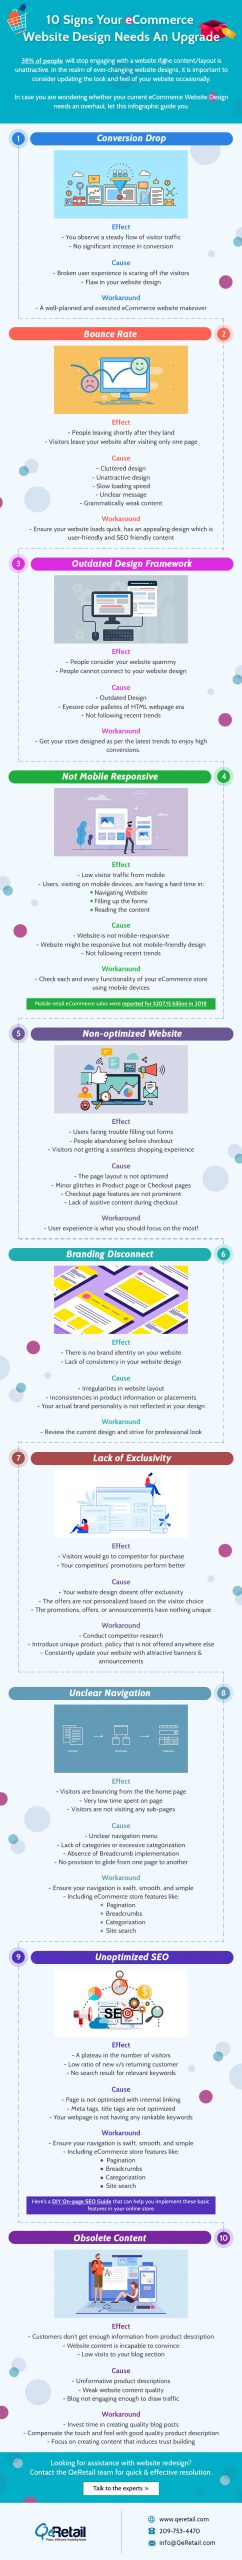 10 Signs Your eCommerce Website Design Needs An Upgrade